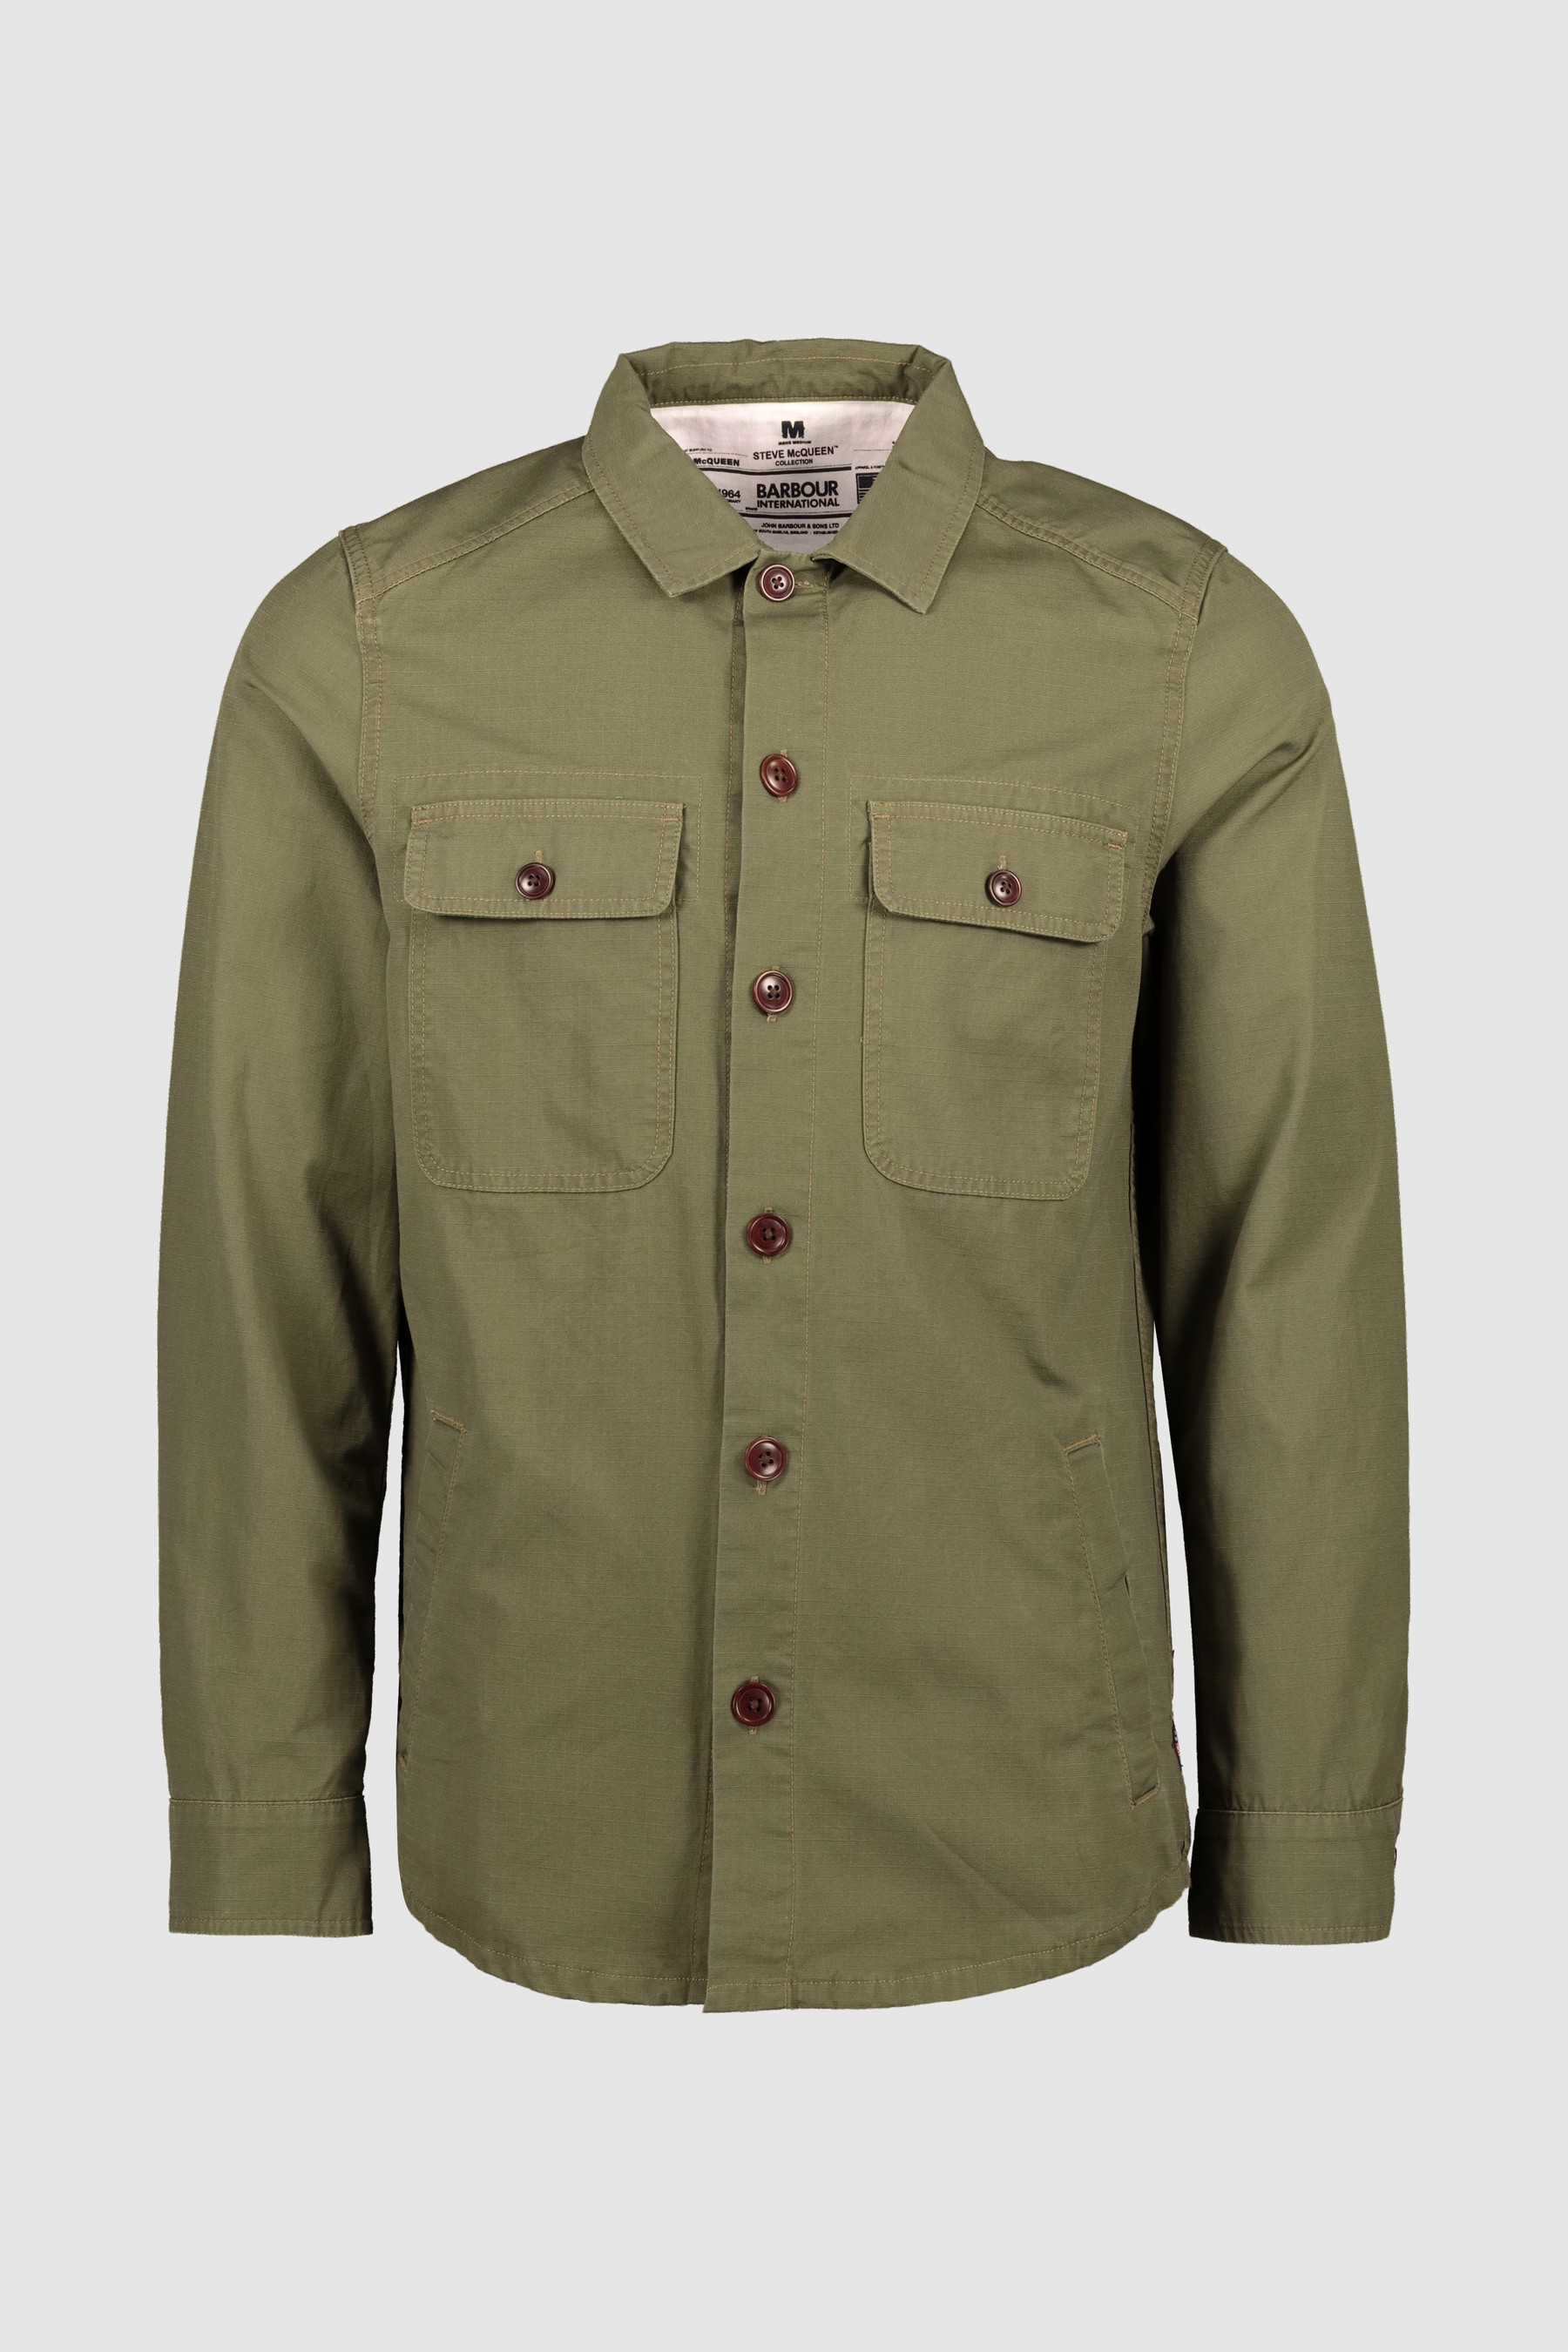 3a4c8df3c Mens Barbour International Steve McQueen Olive Doc Overshirt - Green ...